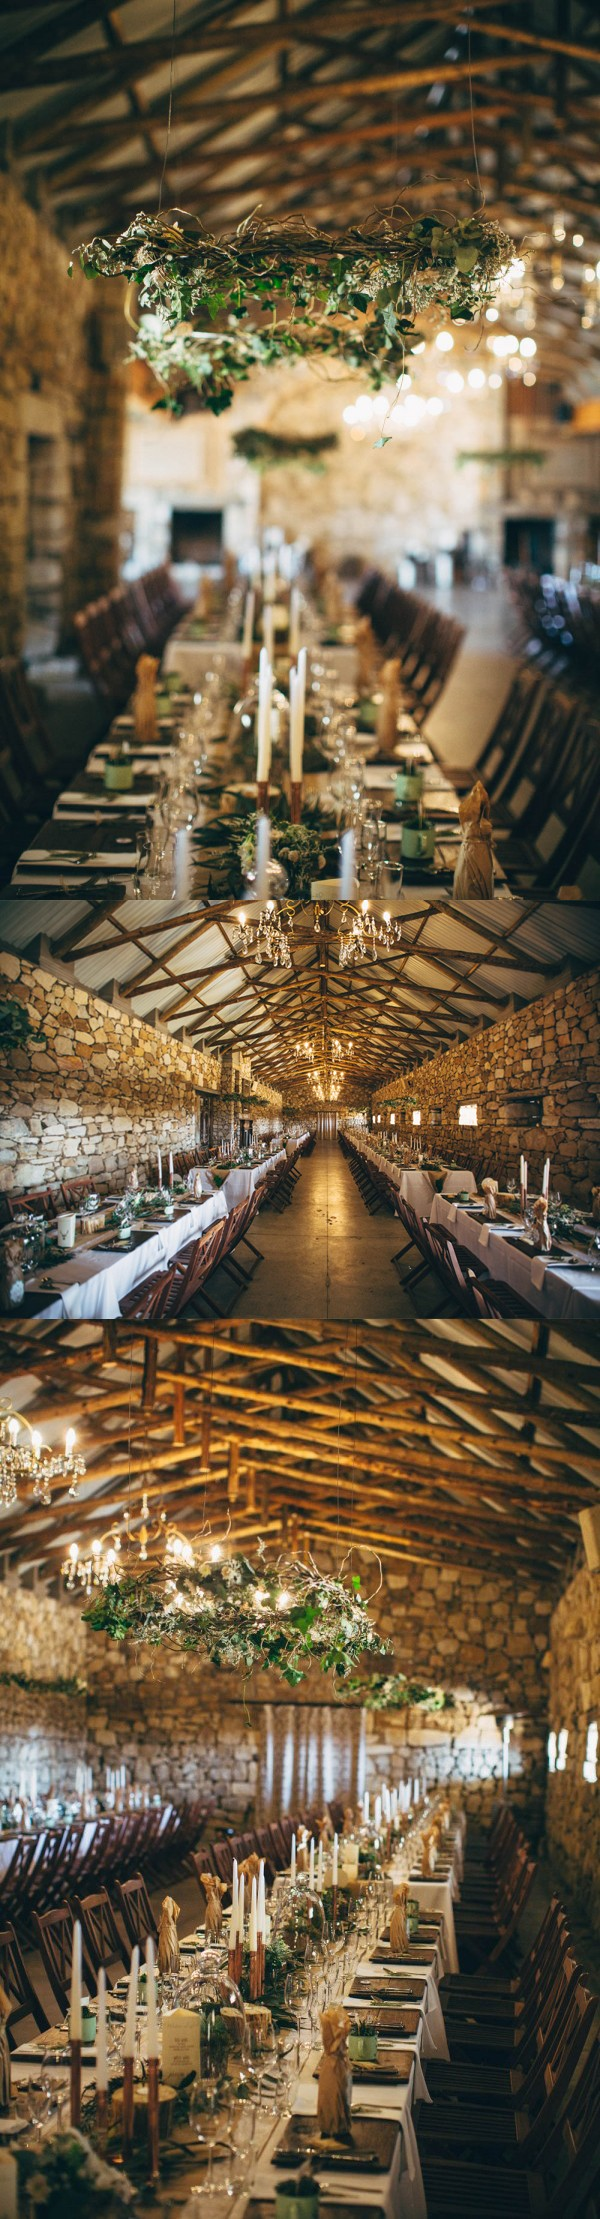 11 Of The Most Beautiful Barn Venues For Getting Hitched Junebug Weddings